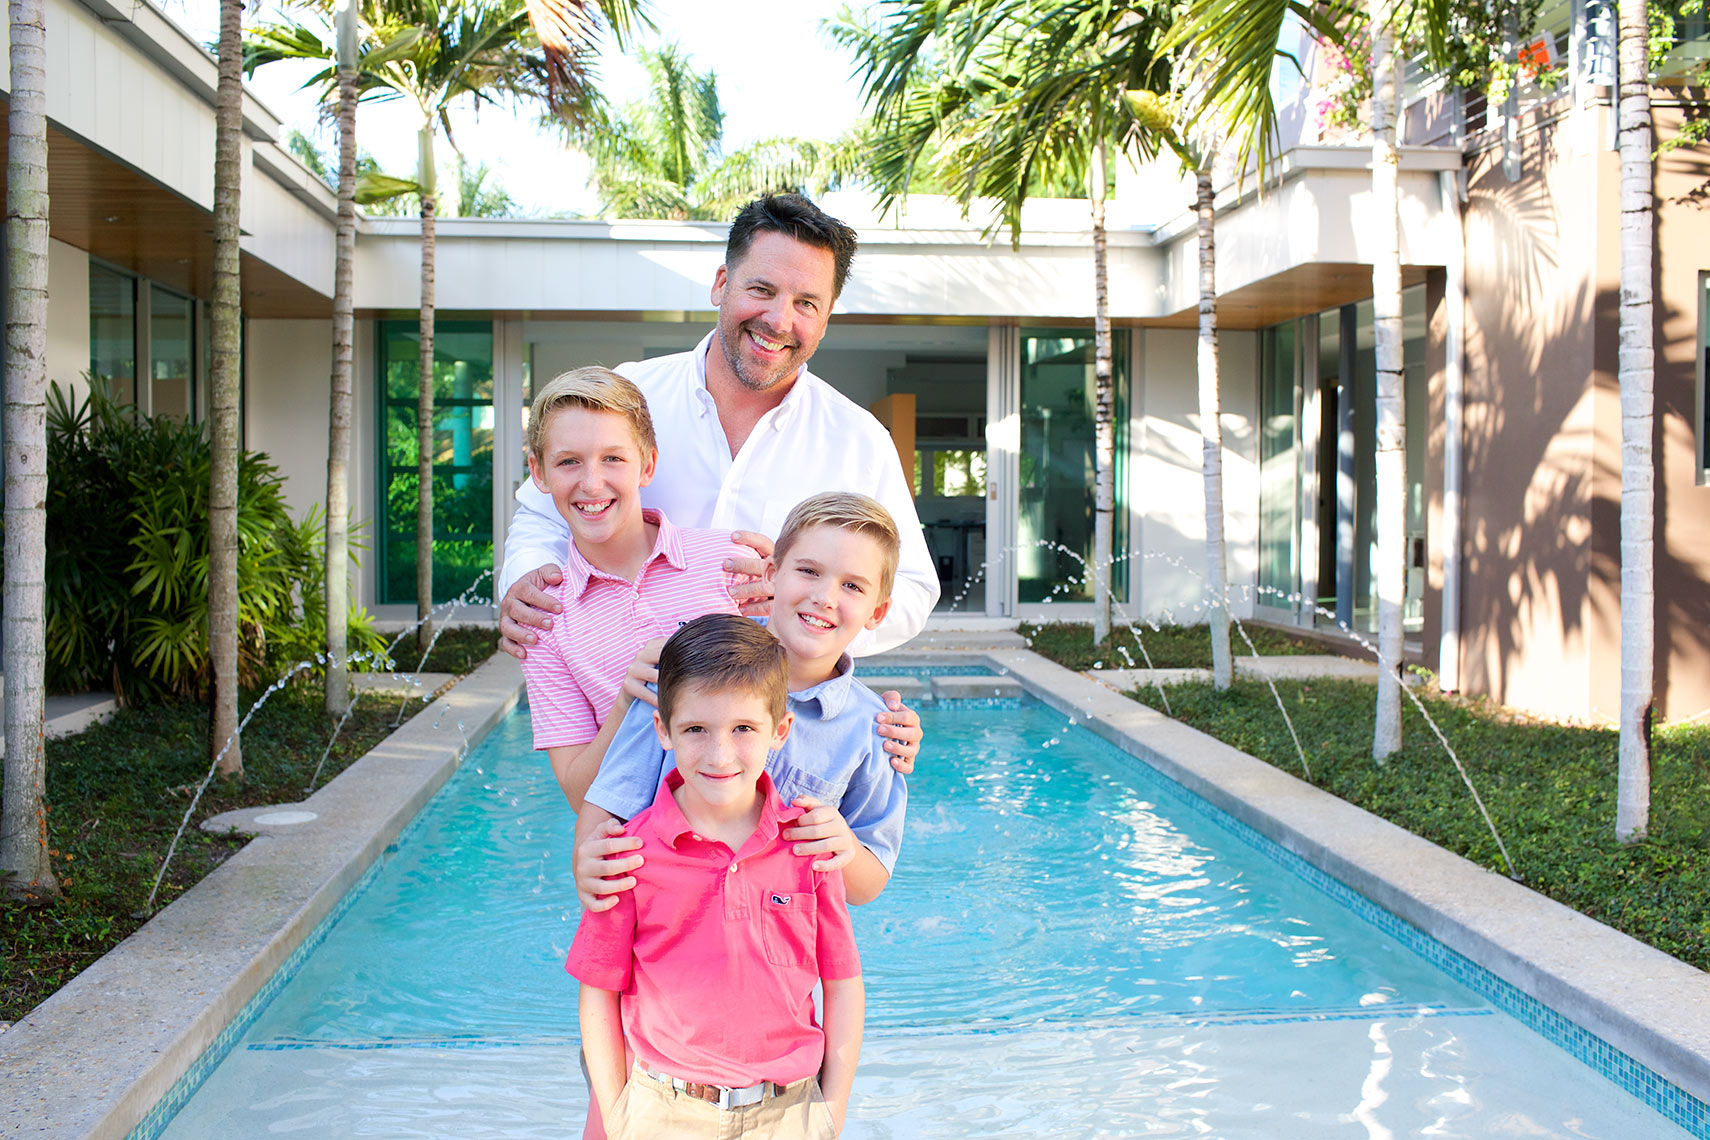 dad-and-boys-poolside portrait-family-photography-Big-Fish-Studios-Stuart,-Florida_Robert-Holland